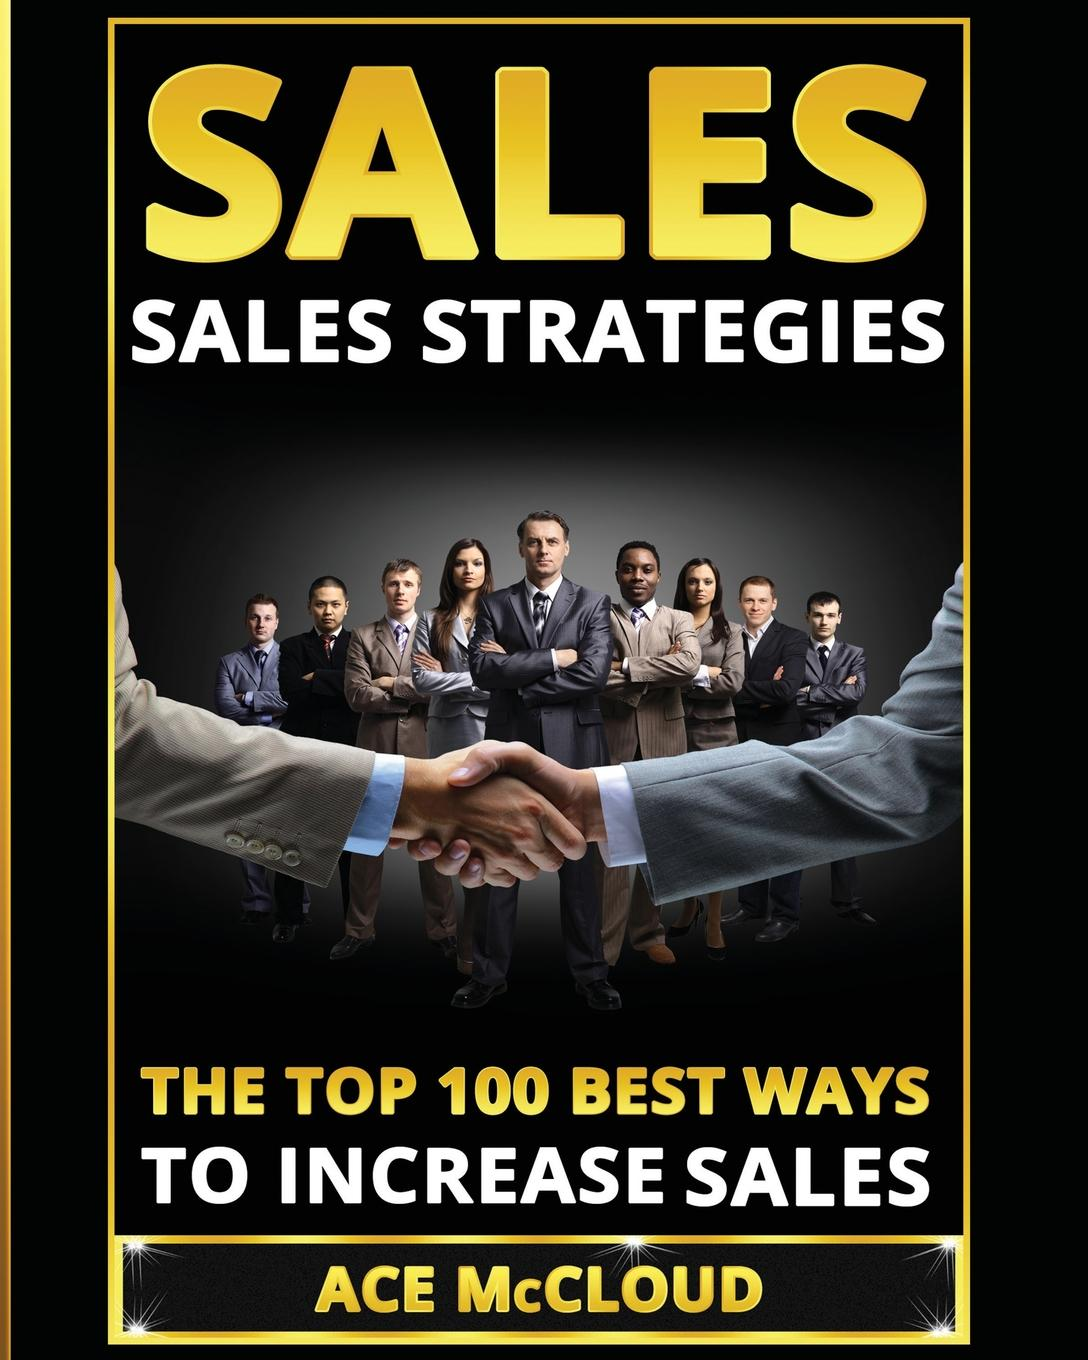 Ace McCloud Sales. Sales Strategies: The Top 100 Best Ways To Increase Sales chris lytle the accidental sales manager how to take control and lead your sales team to record profits